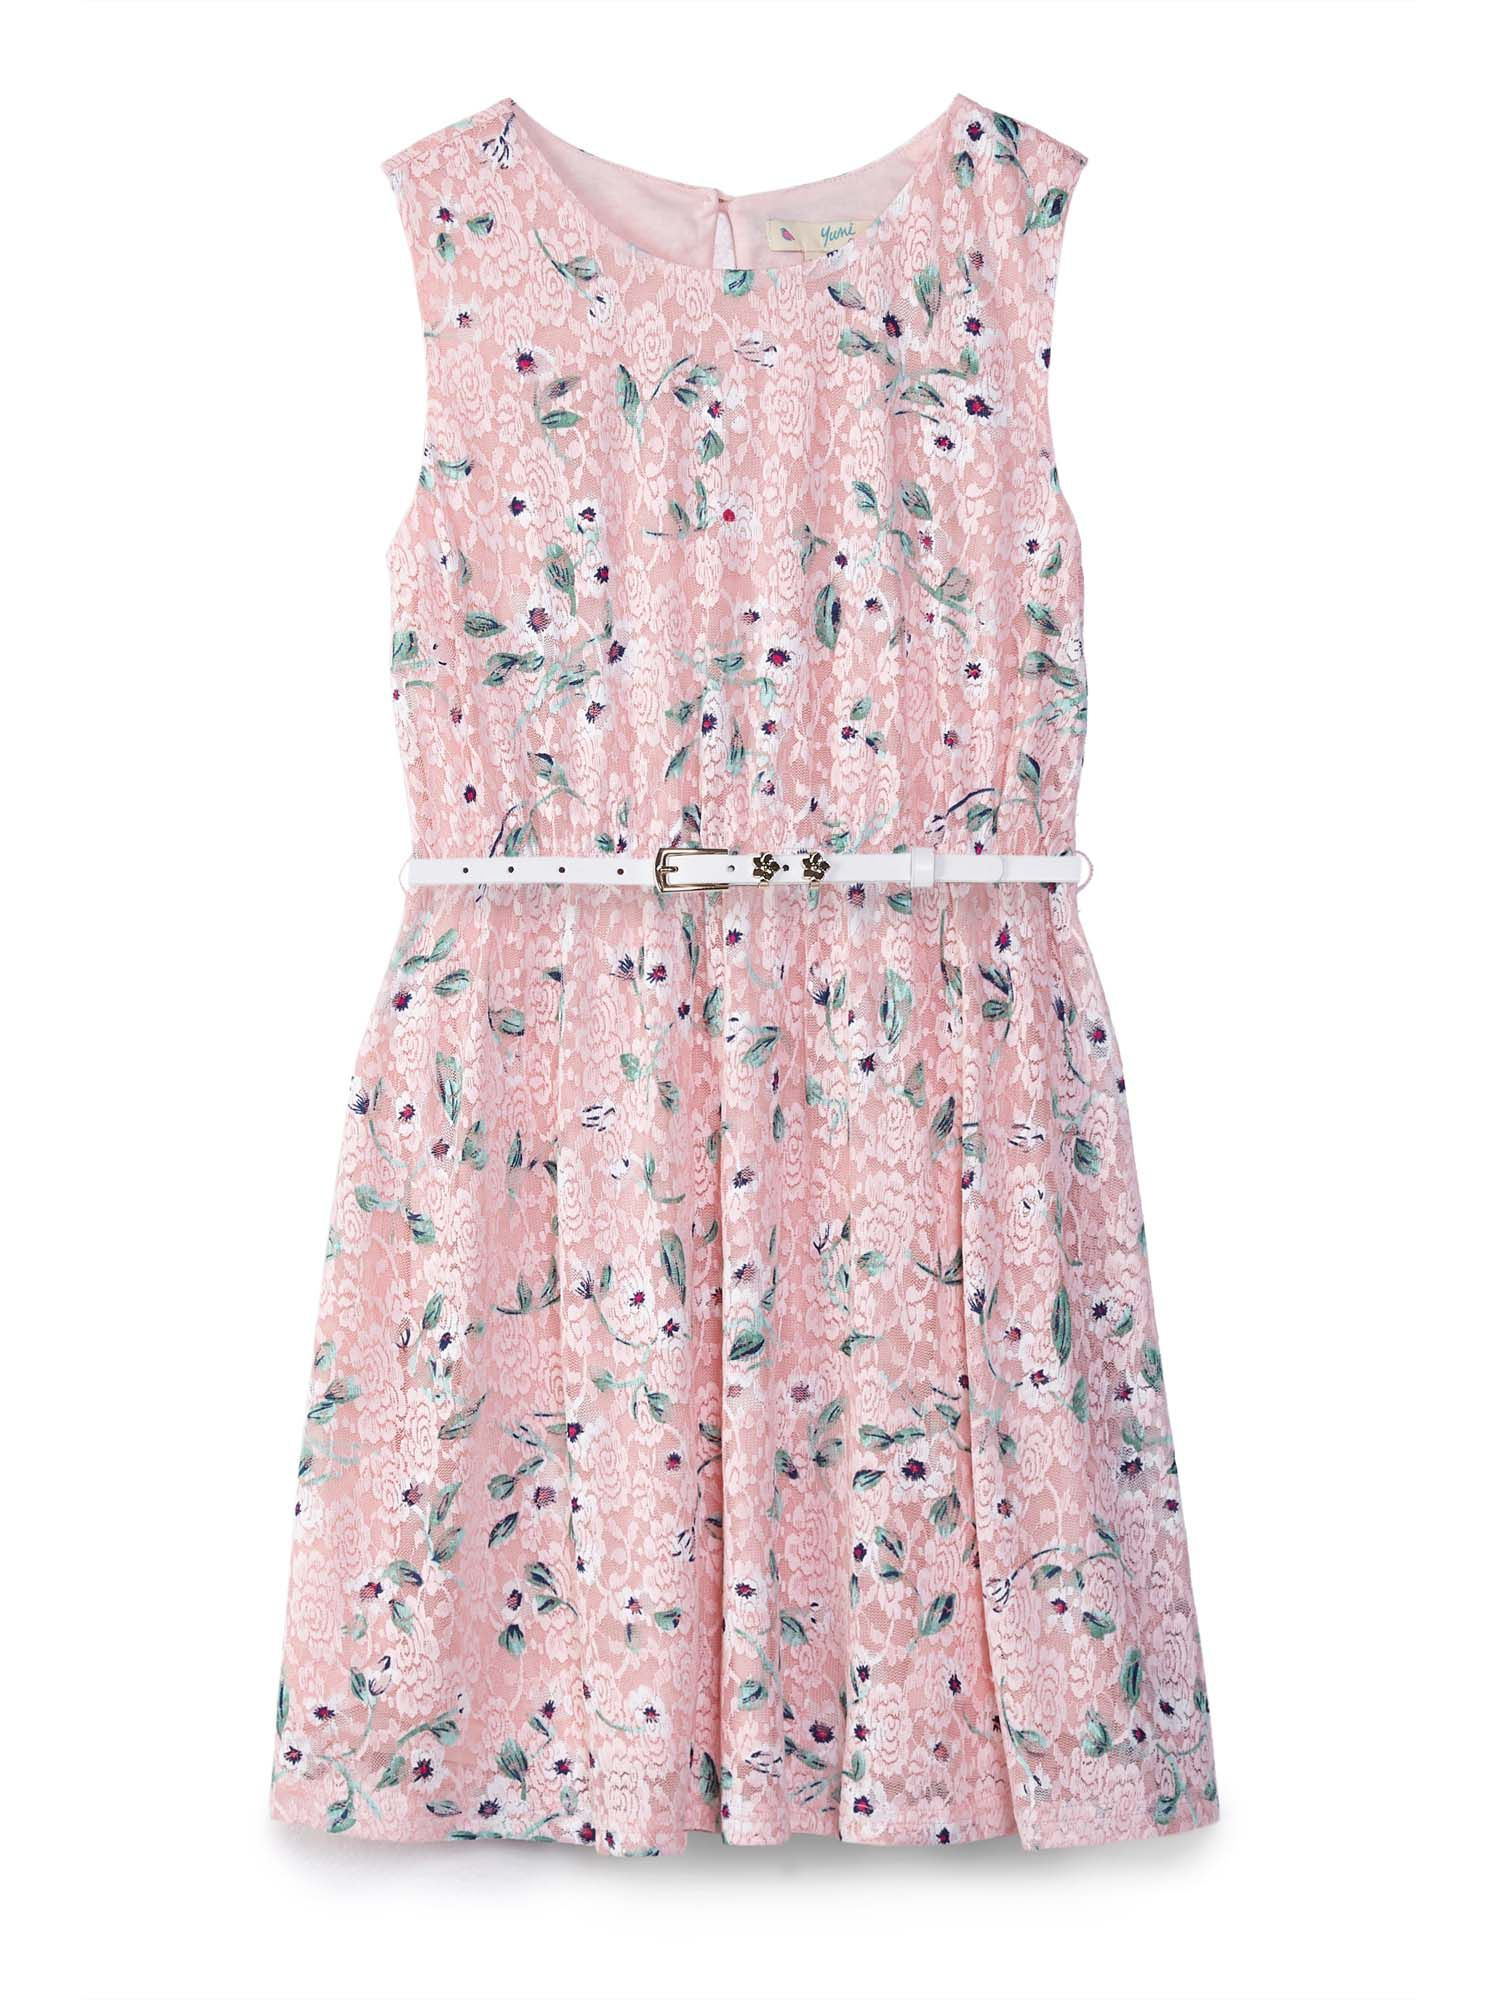 Floral Printed Lace Dress by Yumi Girls